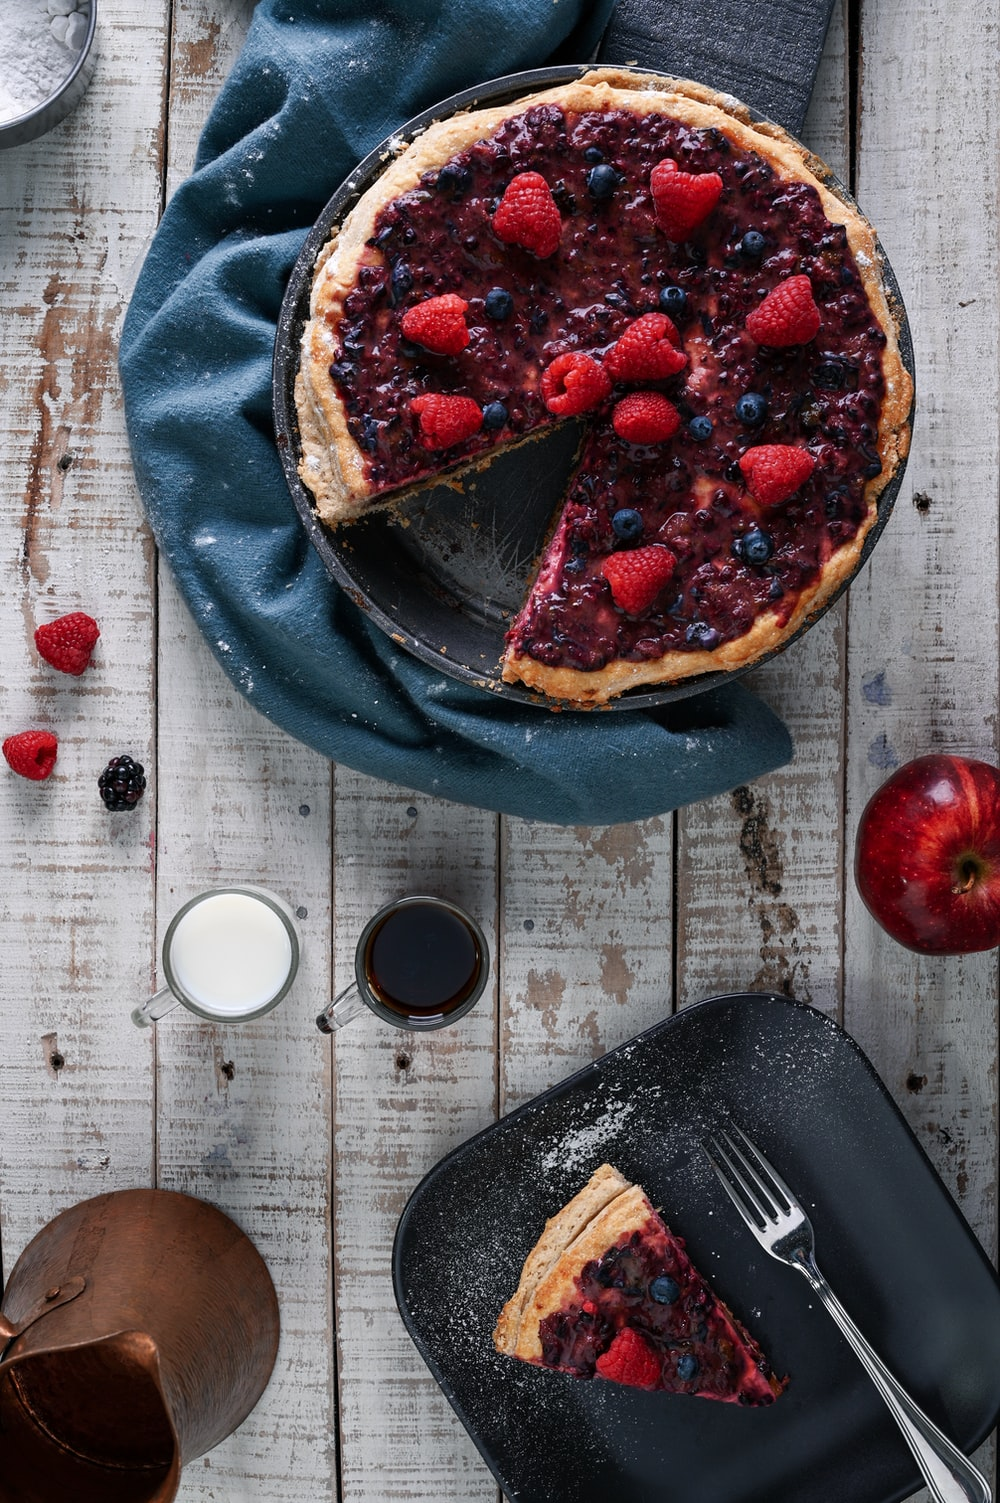 cooked pie with blueberries and strawberries